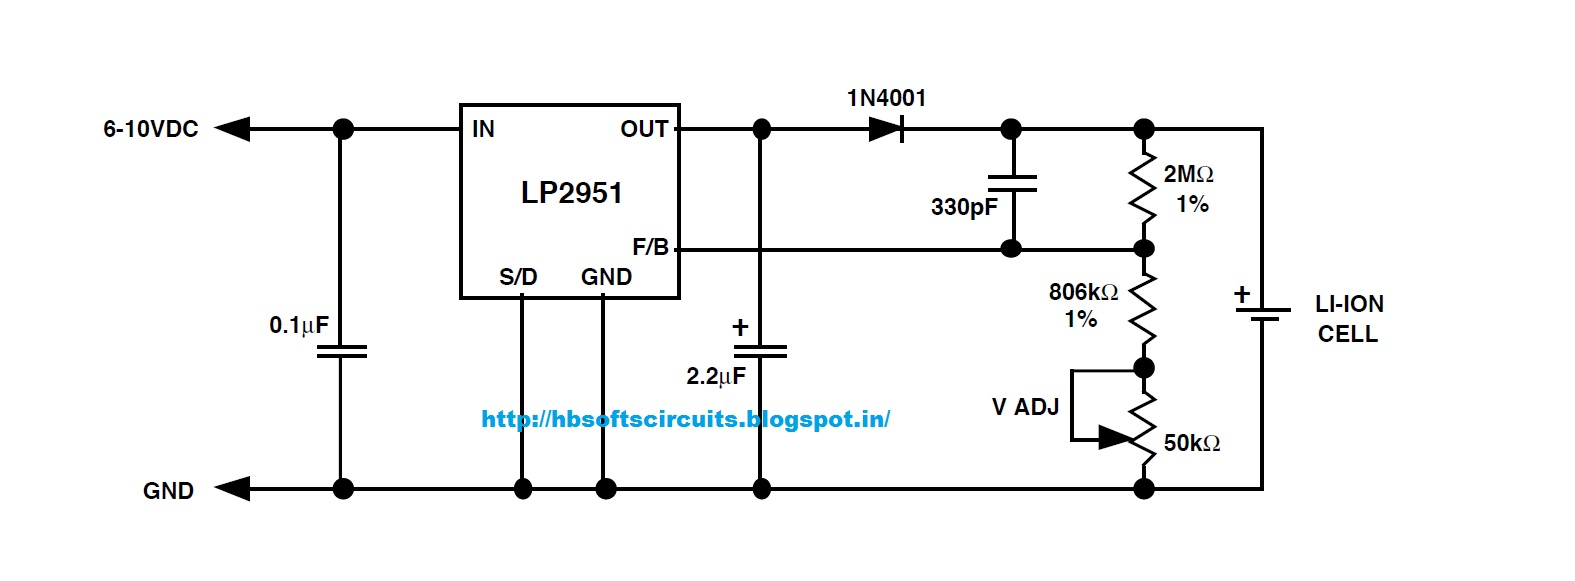 4 Cell Lithium Ion Battery Charger Ic 25 Li Index 238 Control Circuit Diagram Seekiccom Using Lp2951